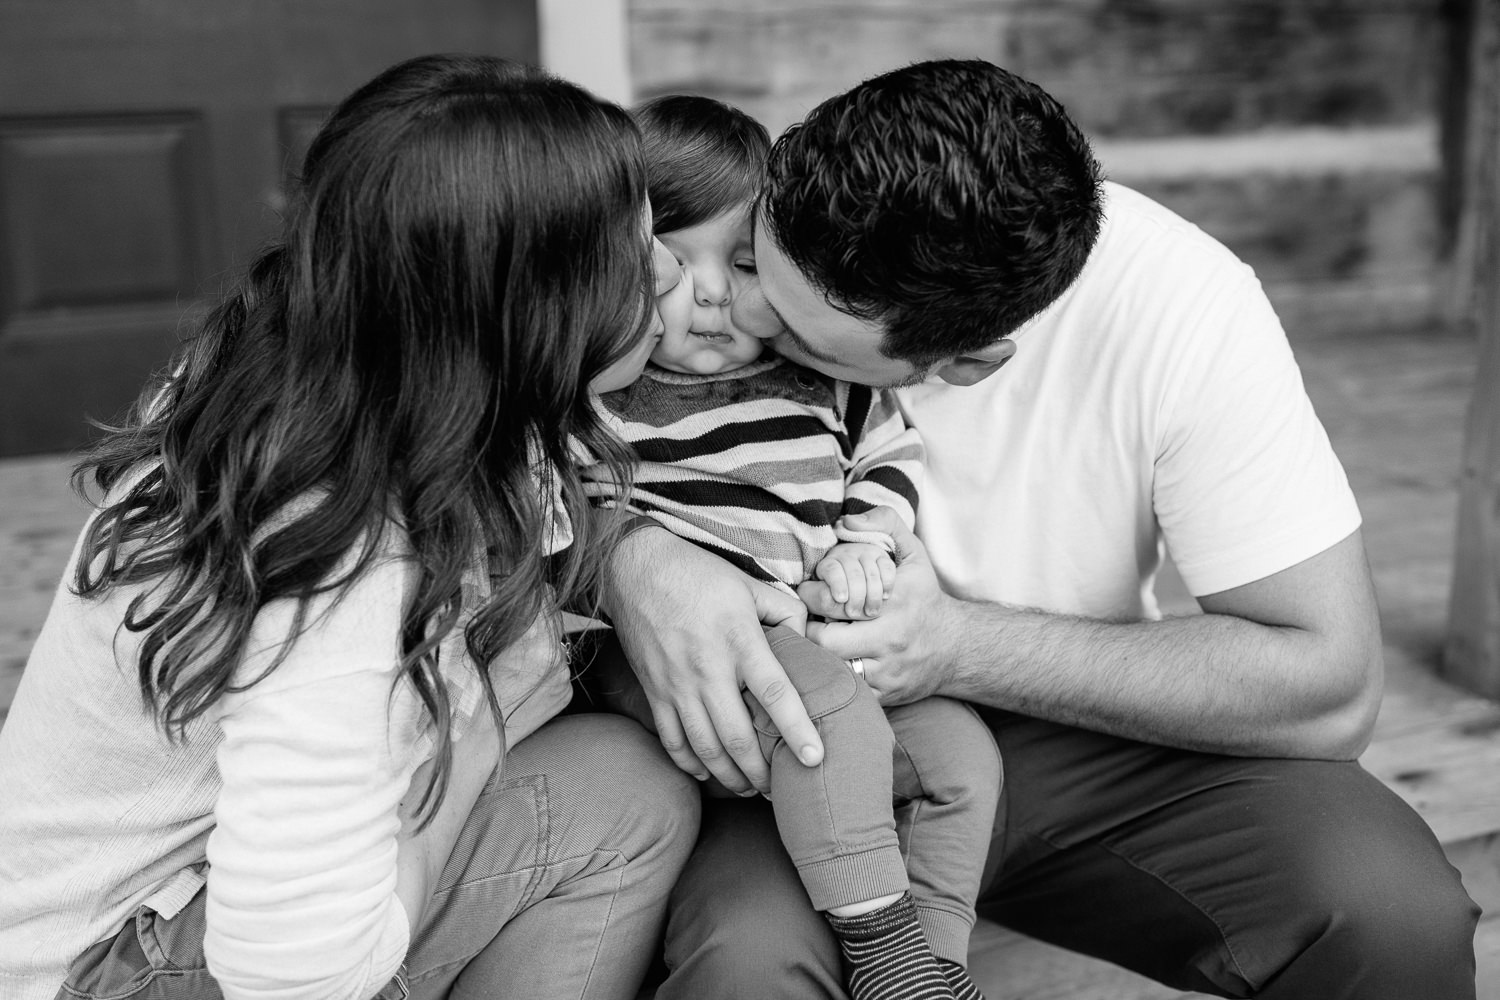 family of 3 sitting on front porch steps of historic log cabin, son between mom and dad, parents kissing child on cheeks - York Region Outdoor Photography